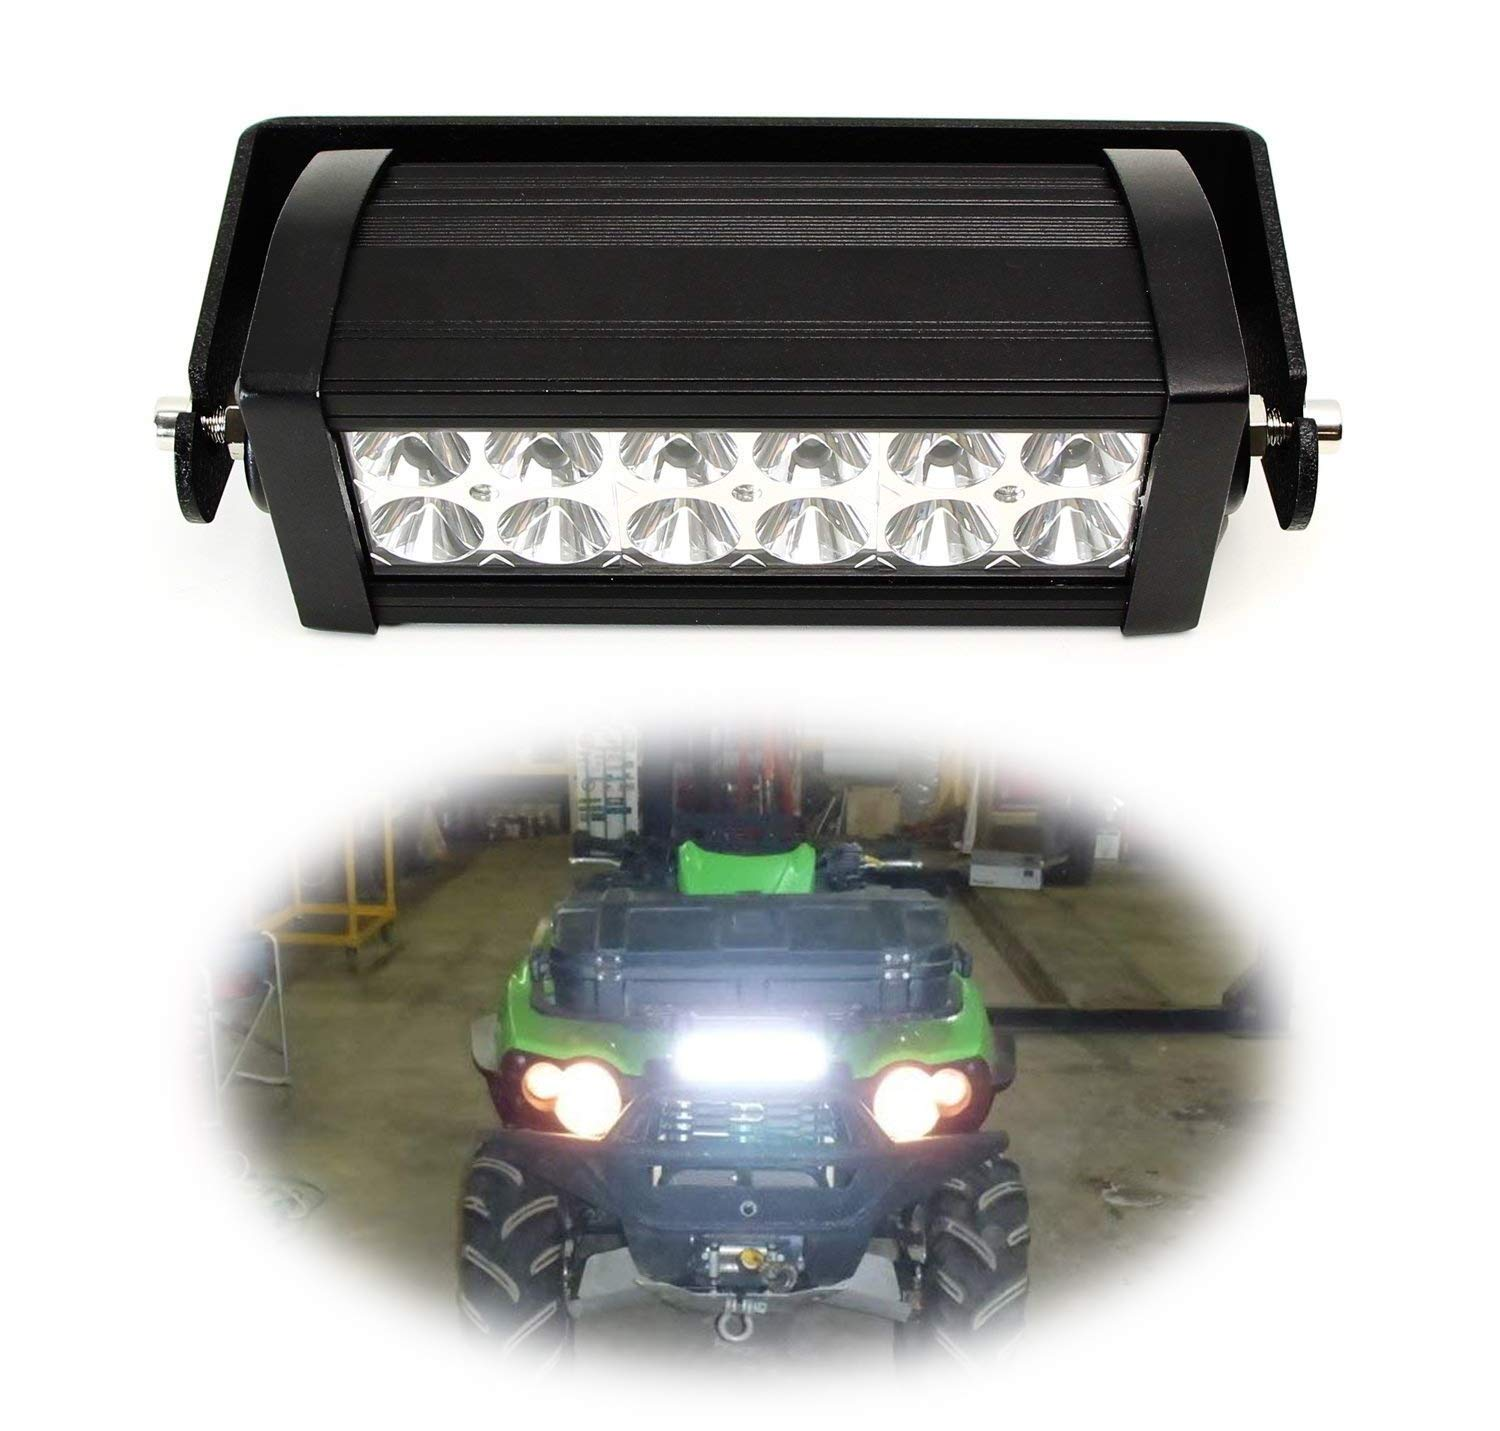 iJDMTOY 8-Inch LED Light Bar Kit Universal Fit For ATV UTV Grill, Hood & Handles, Includes (1) 36W High Power Double Row LED Light Bar & Front Grille/Center Hood/Handlebar Mounting Bracket by iJDMTOY